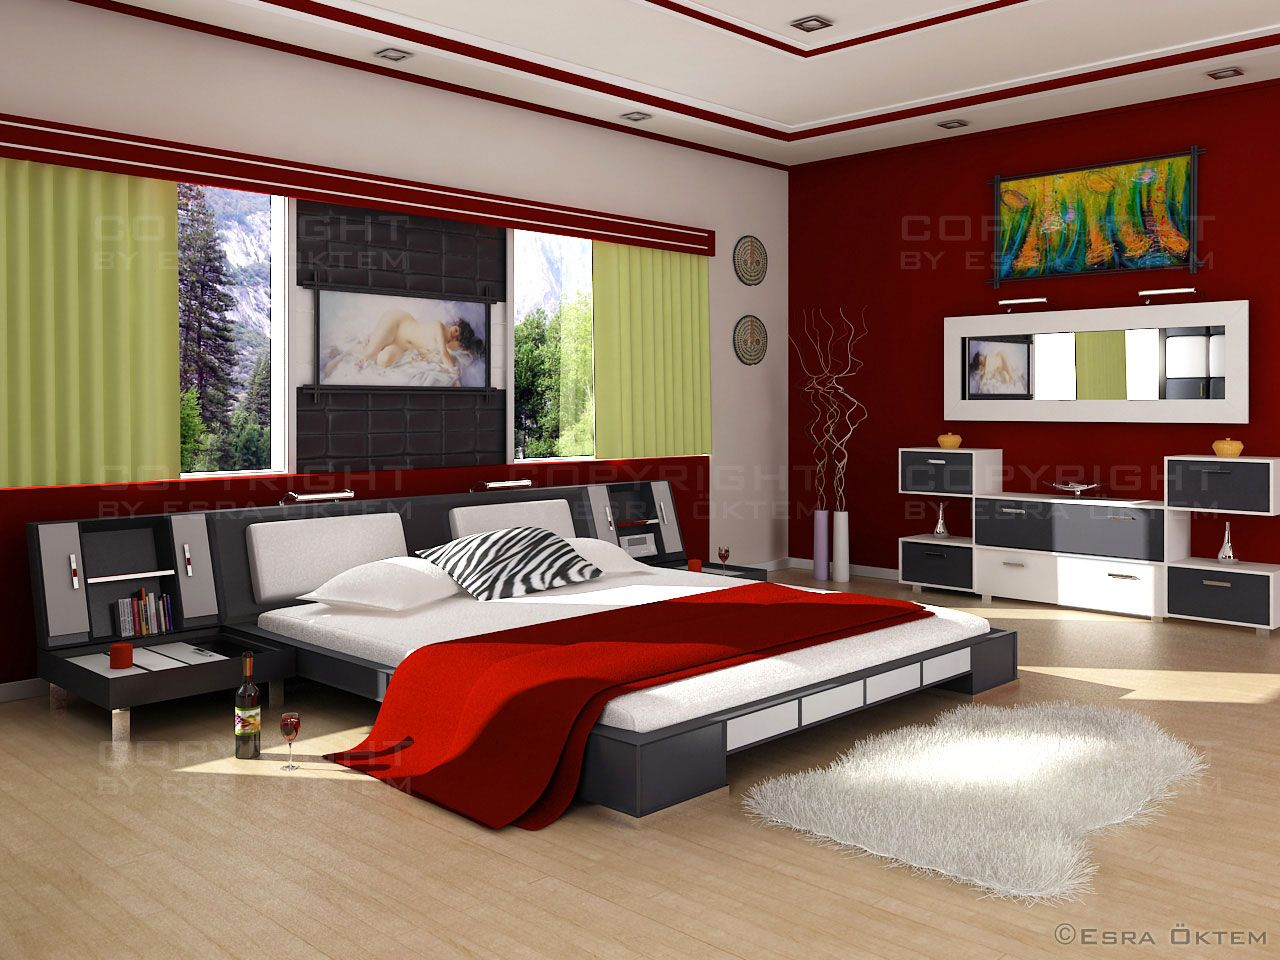 Red Bedroom Design Ideas  Bedroom  Pinterest  Red Bedroom Mesmerizing House Bedroom Design Review